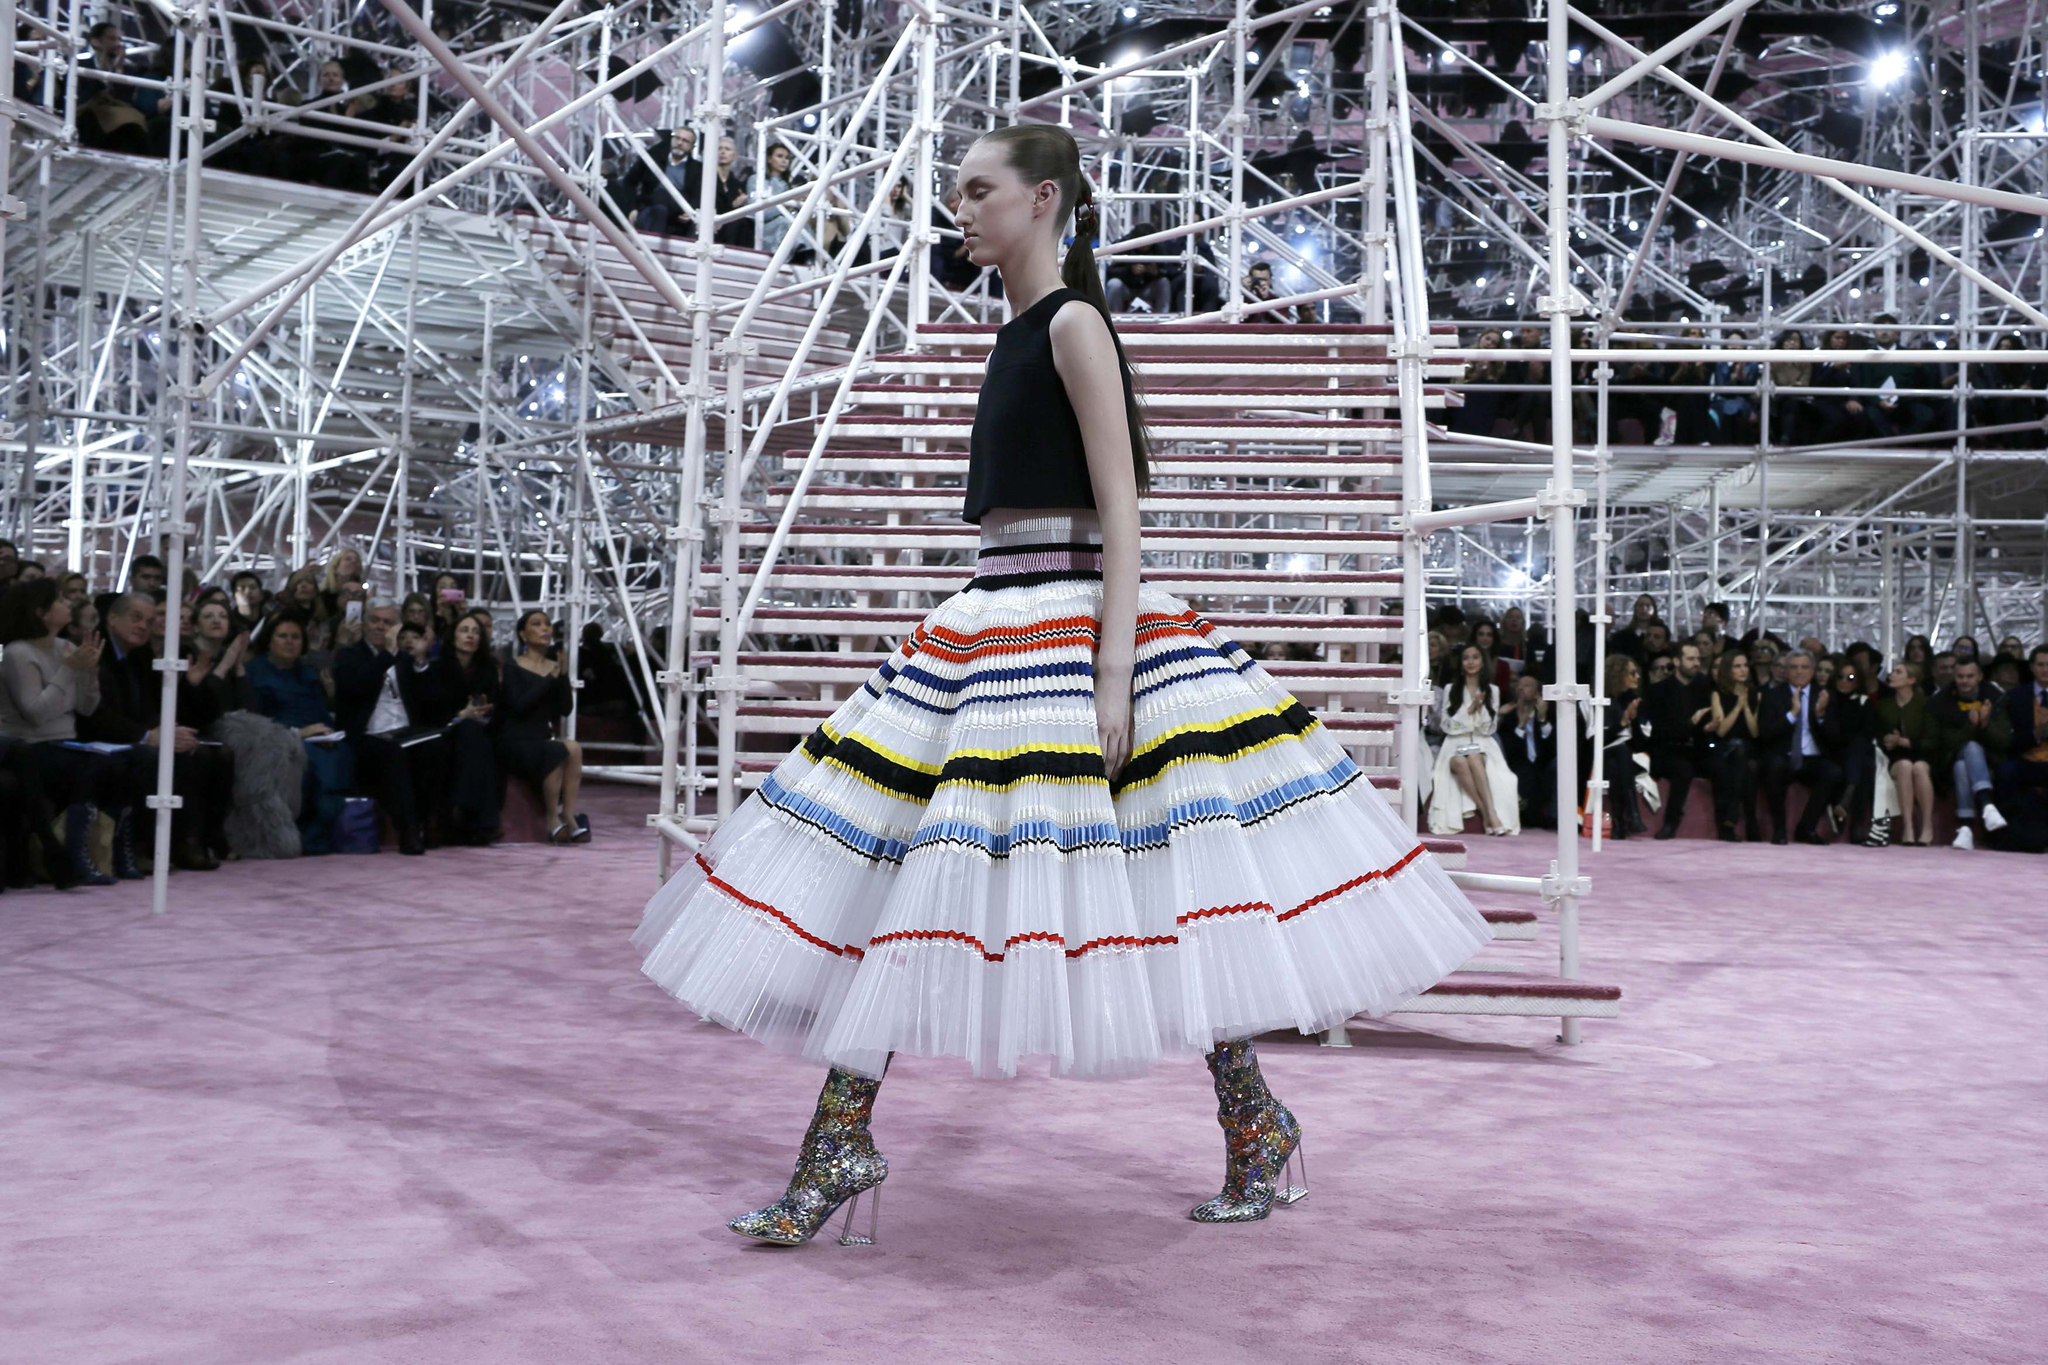 A model presents a creation by Belgian designer Raf Simons as part of his Haute Couture Spring Summer 2015 fashion show for French fashion house Christian Dior in Paris...A model presents a creation by Belgian designer Raf Simons as part of his Haute Couture Spring Summer 2015 fashion show for French fashion house Christian Dior in Paris January 26, 2015.    REUTERS/Gonzalo Fuentes (FRANCE  - Tags: FASHION)